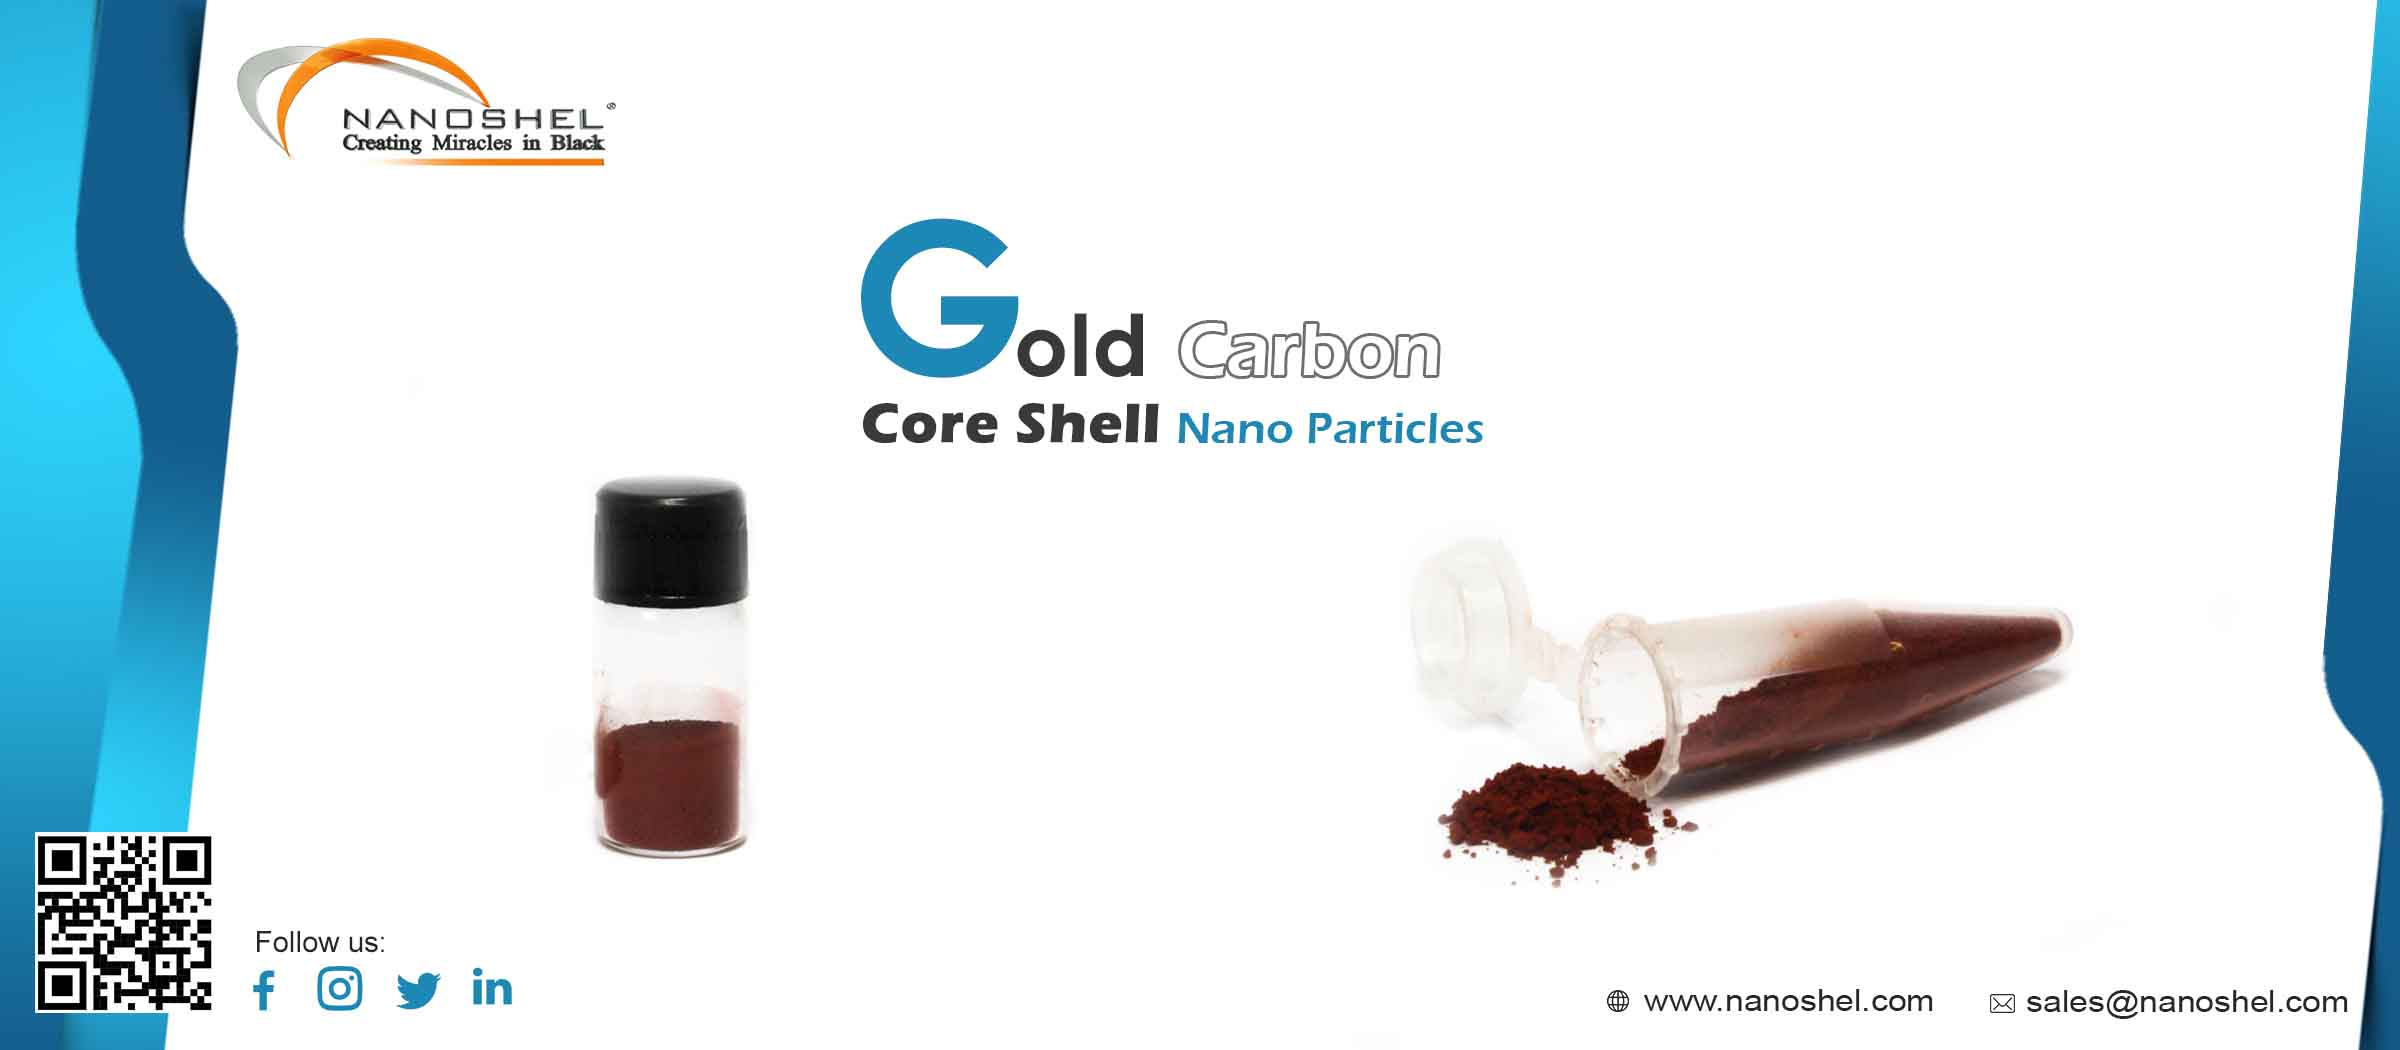 Gold Carbon Core Shell Nanoparticles